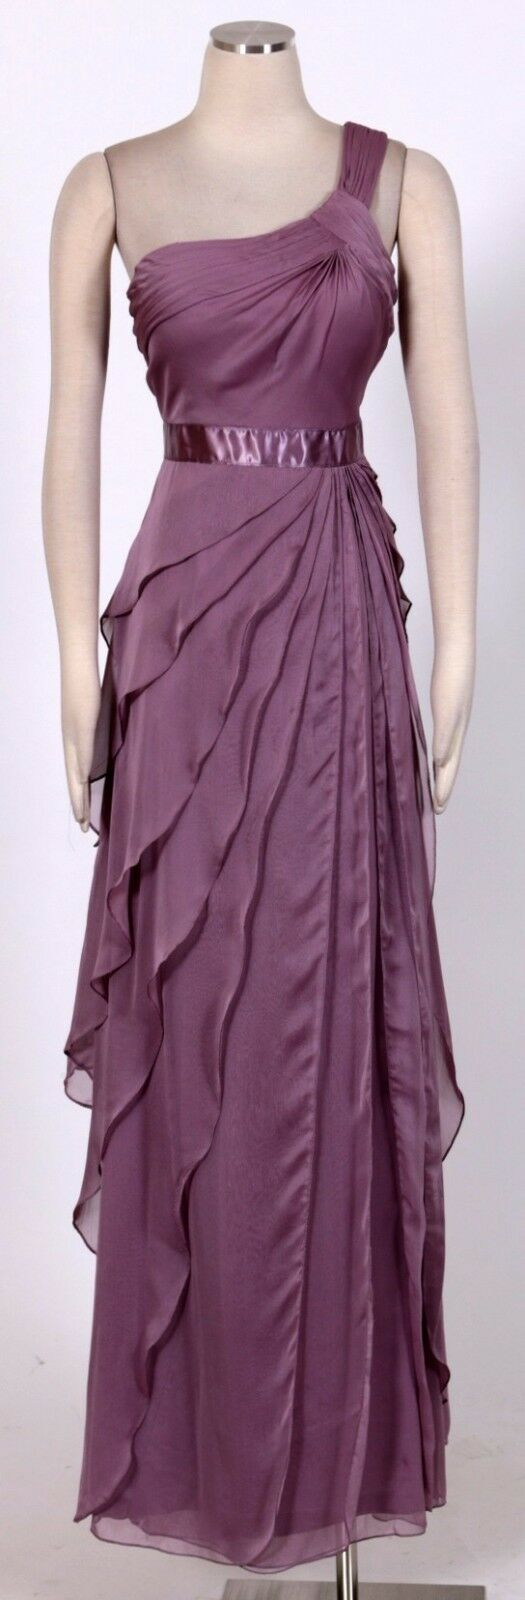 ADRIANNA PAPELL Purple Sz 12 Women's Formal One Shoulder Tiered Dress  New